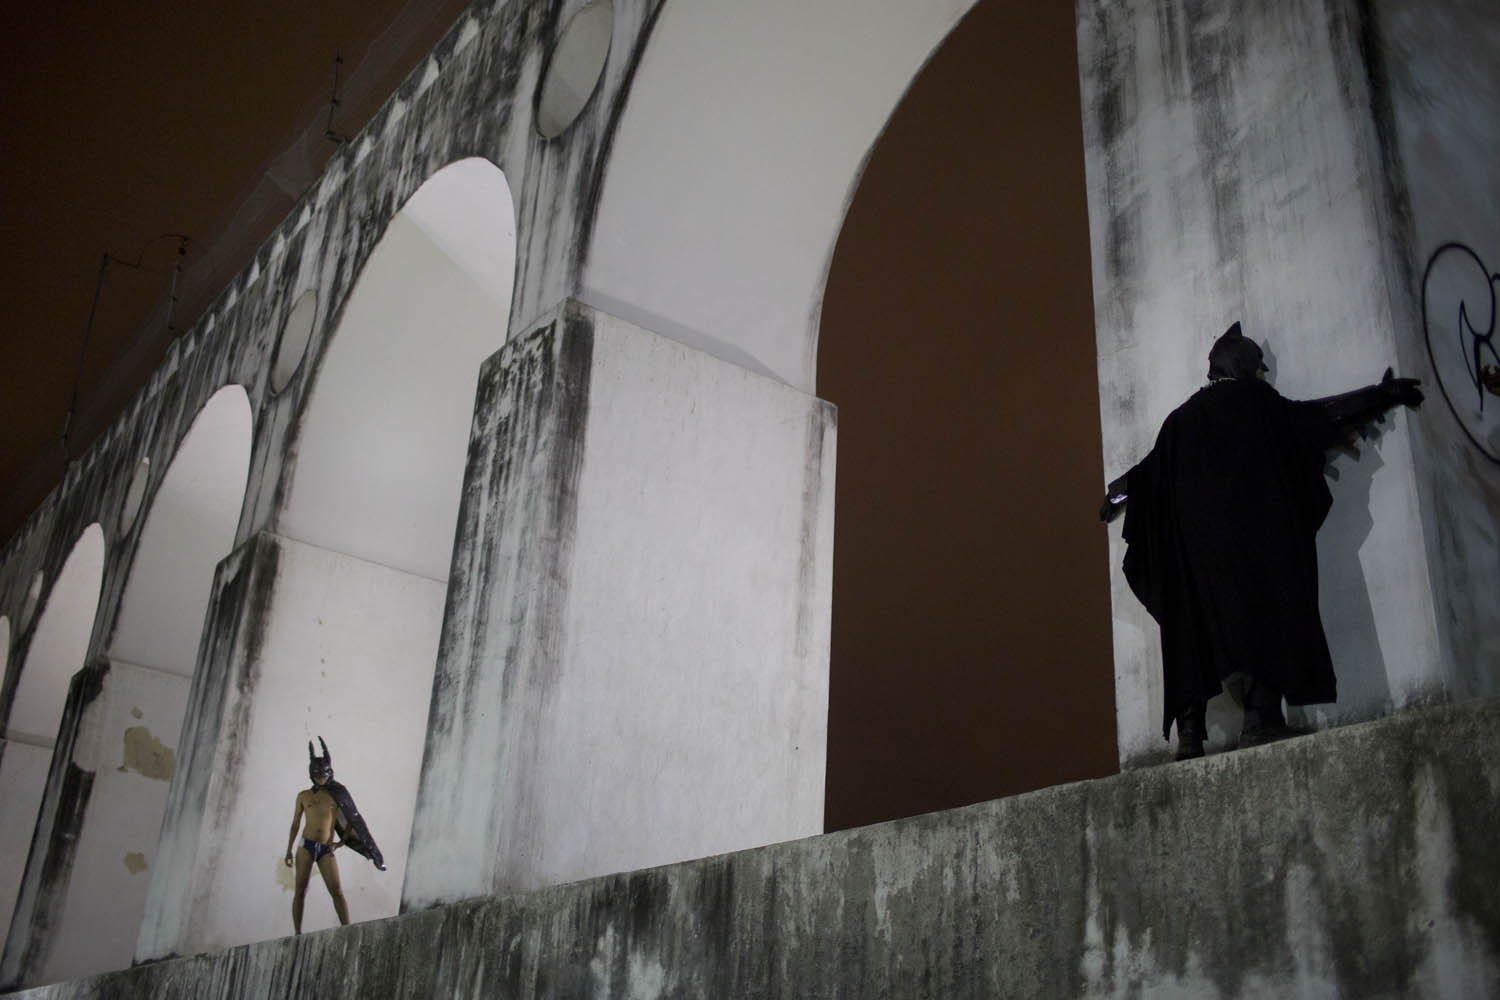 Oct. 31, 2013. Protesters wearing Batman costumes stand over the Carioca Aqueduct, also know as Arcos da Lapa, during a demonstration in Rio de Janeiro, Brazil.